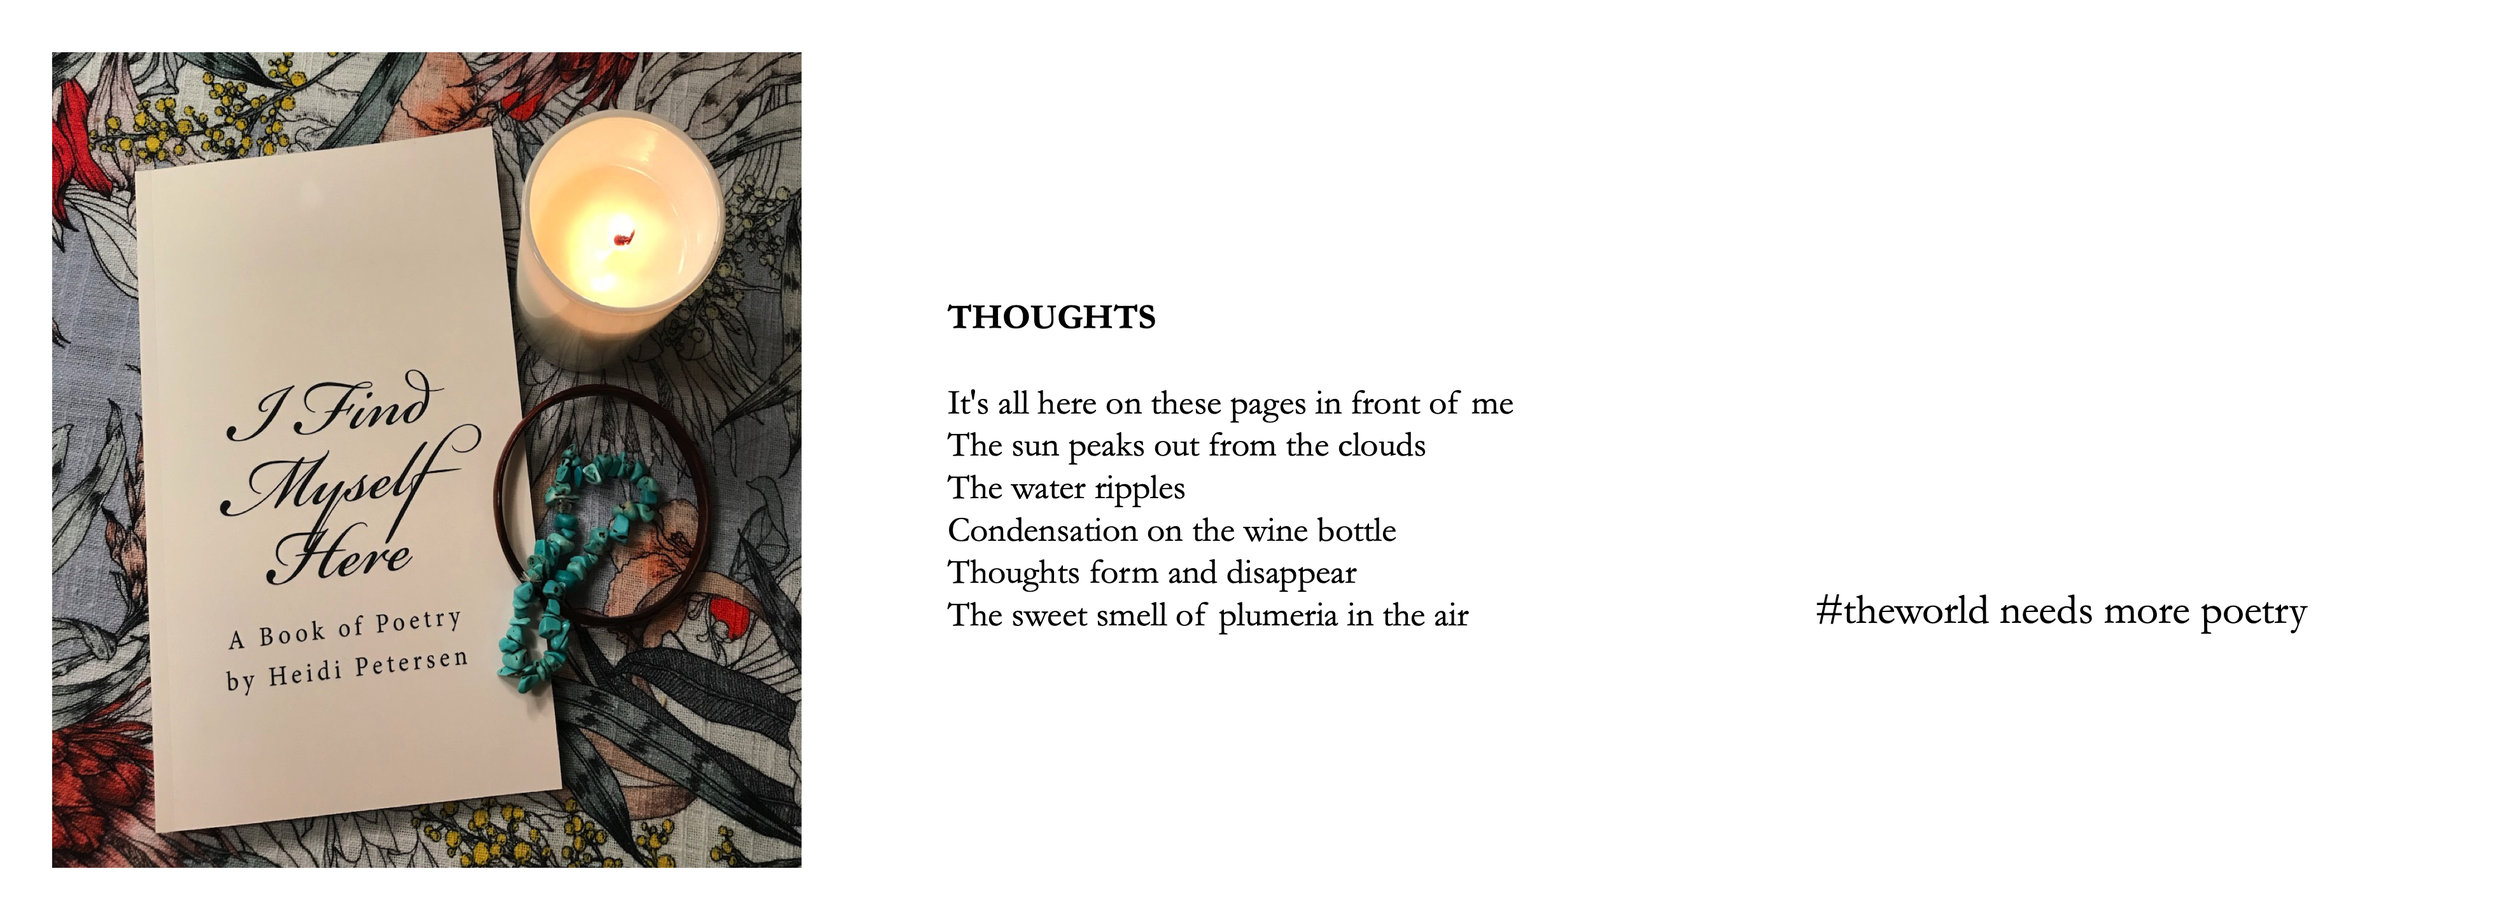 I FIND MYSELF HERE - This little book of poetry is available on Amazon.